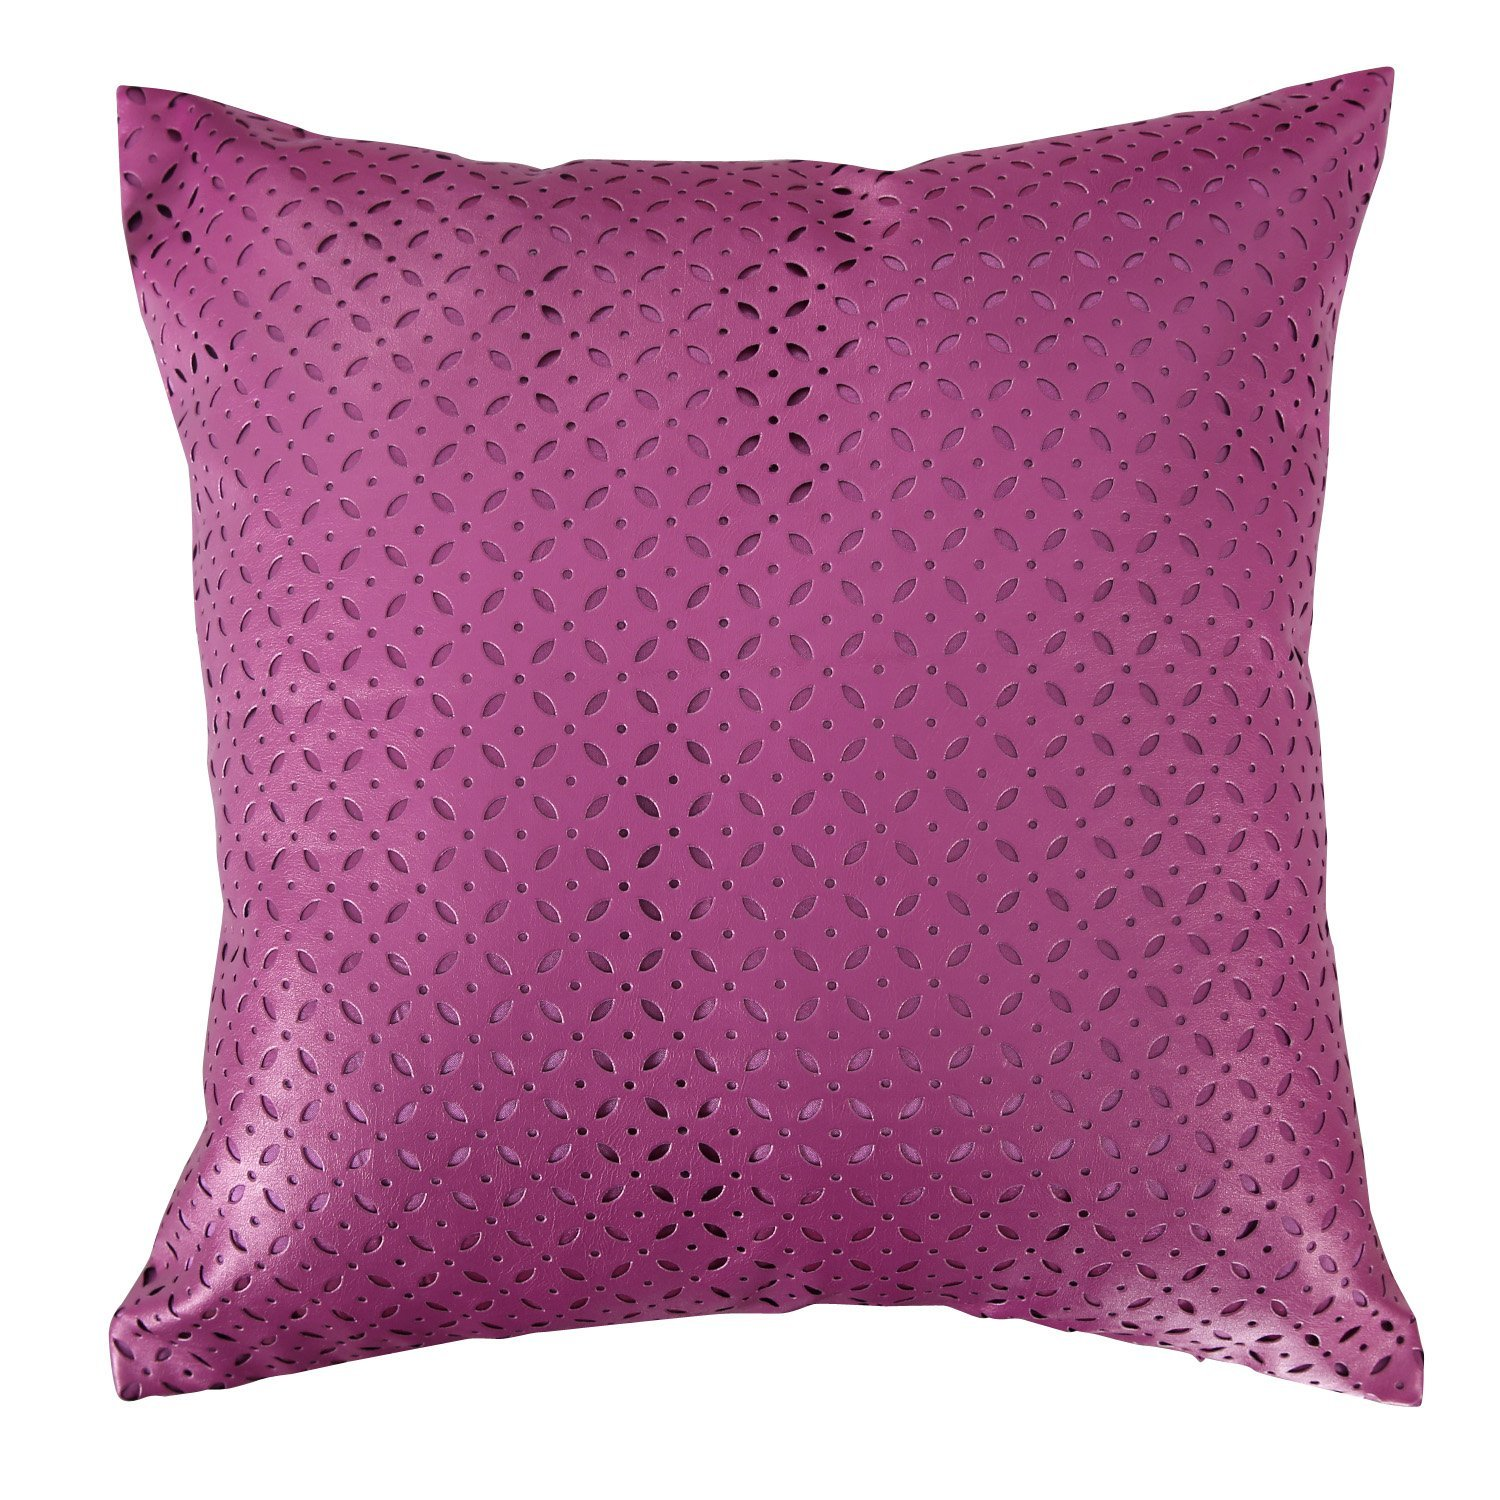 Cheap Pink Cushion Flower Find Pink Cushion Flower Deals On Line At